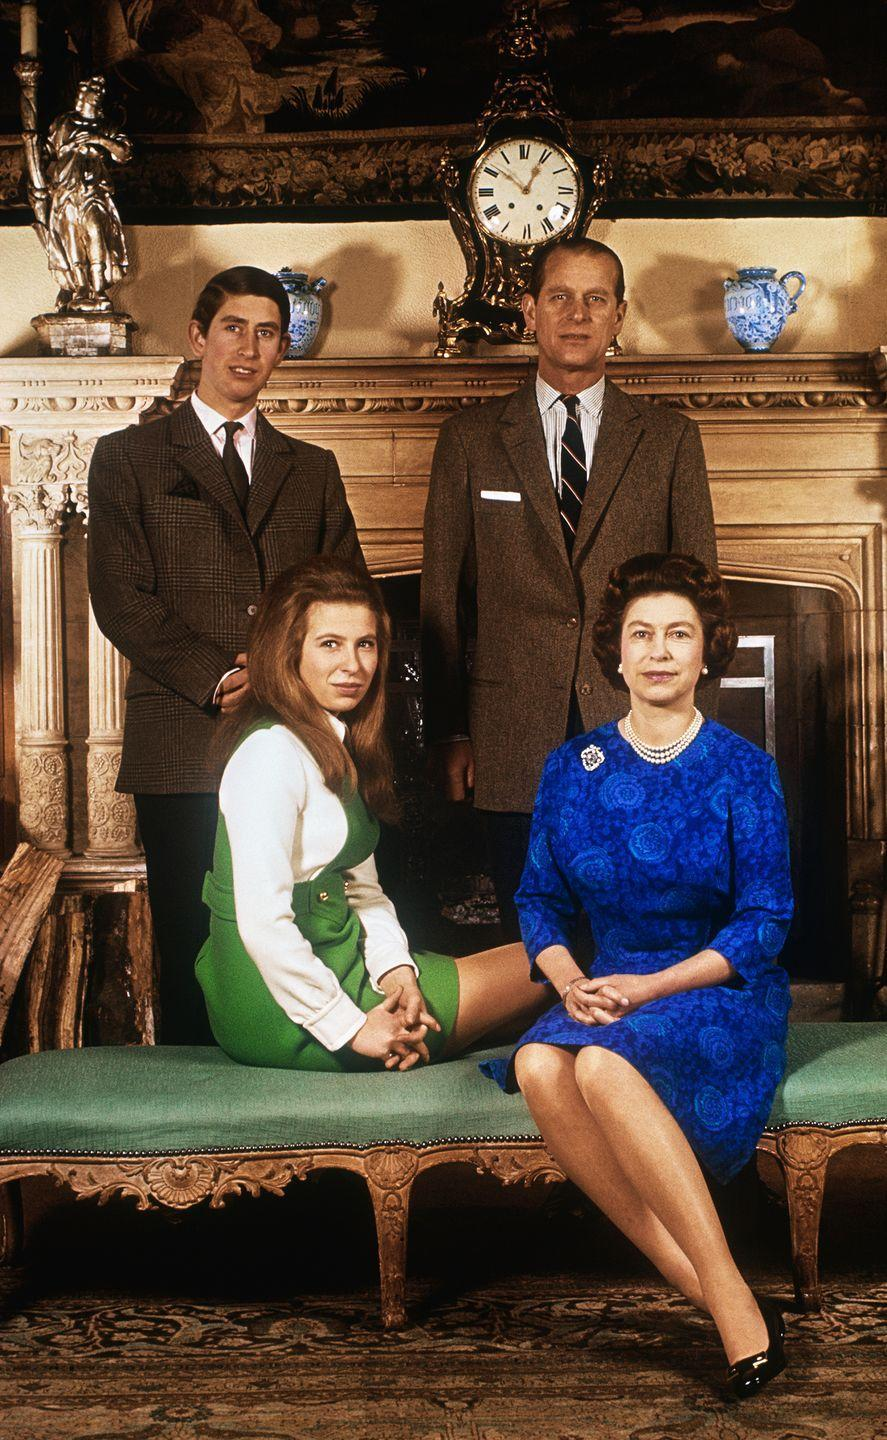 """<p>Prince Charles, Prince Philip, Princess Anne, and Queen Elizabeth II pose for a family portrait at <a href=""""https://www.sandringhamestate.co.uk/"""" rel=""""nofollow noopener"""" target=""""_blank"""" data-ylk=""""slk:Sandringham House"""" class=""""link rapid-noclick-resp"""">Sandringham House</a>, Her Majesty's country home near Norfolk, England. The photo was taken ahead of their royal tour to Australia and New Zealand.</p>"""